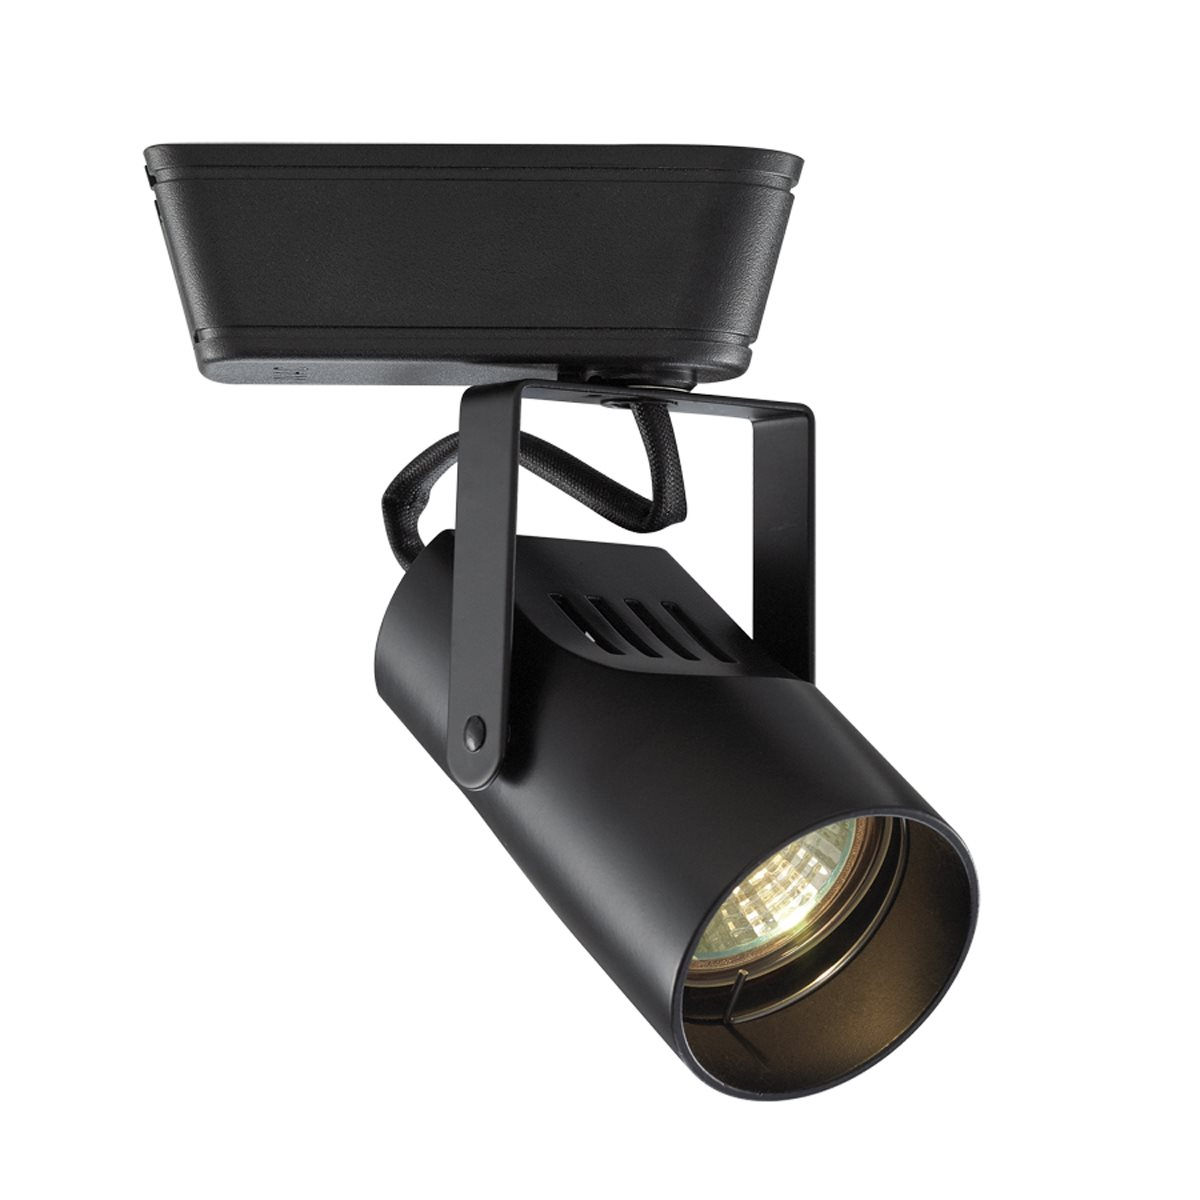 Wac lighting 007 premium low voltage framing track light fixture jht 007 for use with j j2 2 circuit system connector 5 bk black aloadofball Gallery